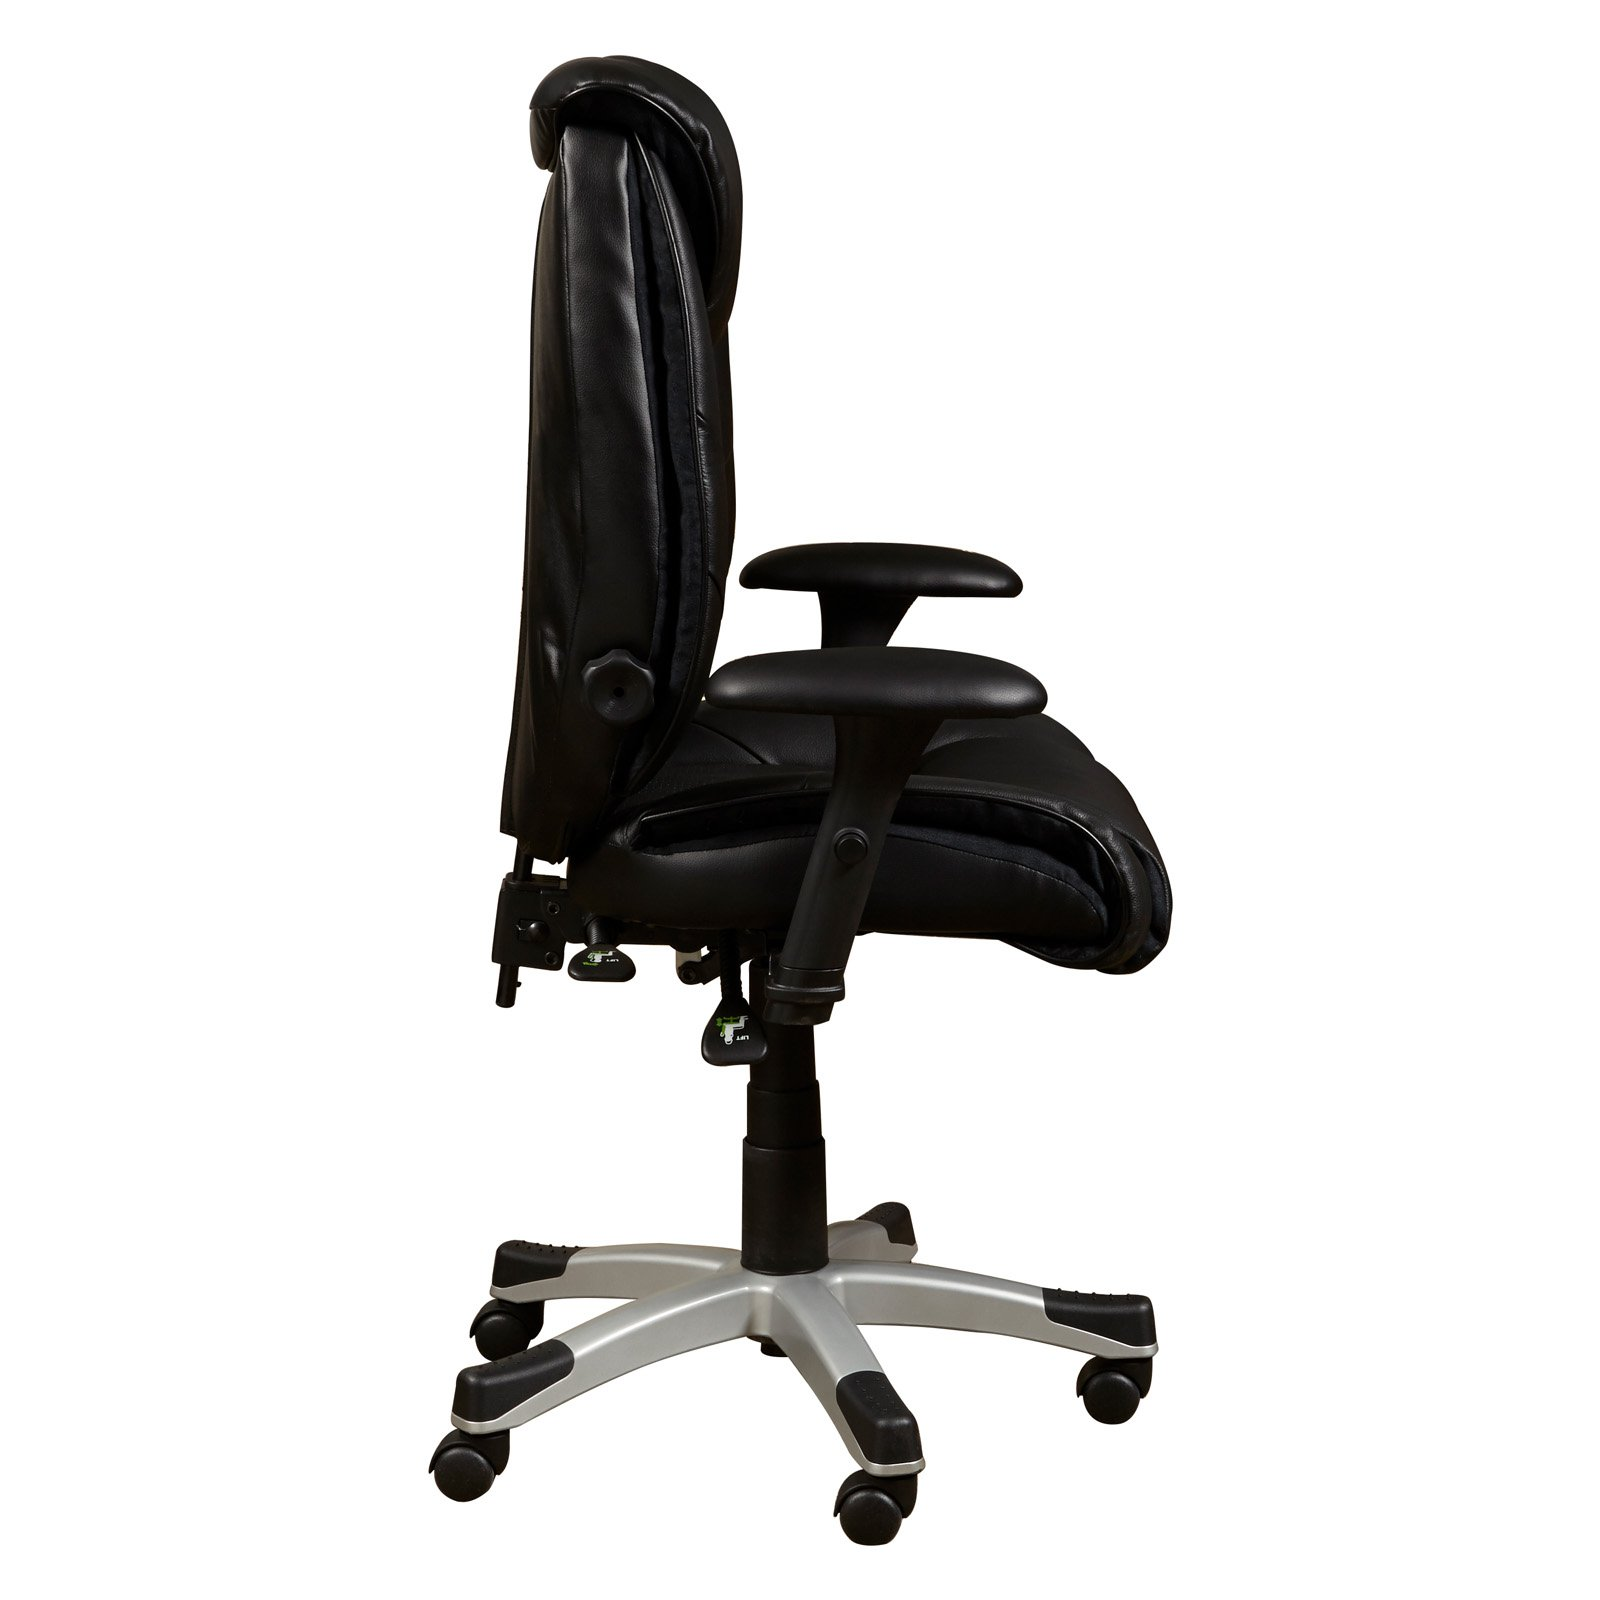 Home Meridian Sealy Leather Memory Foam Office Chair   Walmart.com